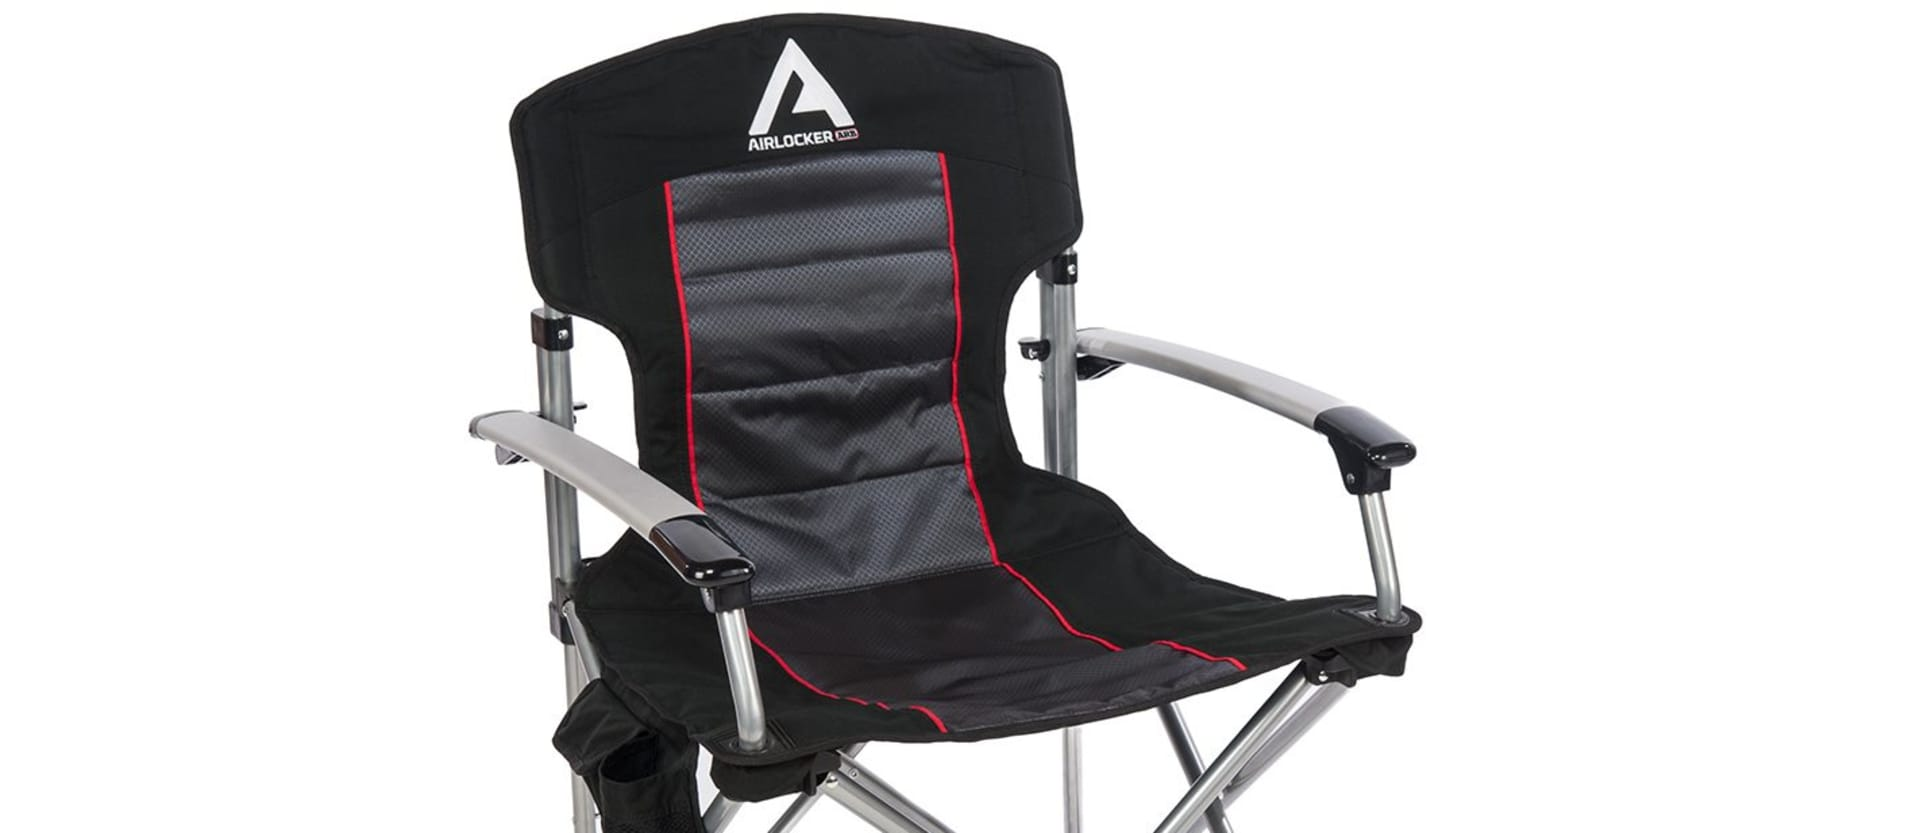 ARB camp chairs: Product test